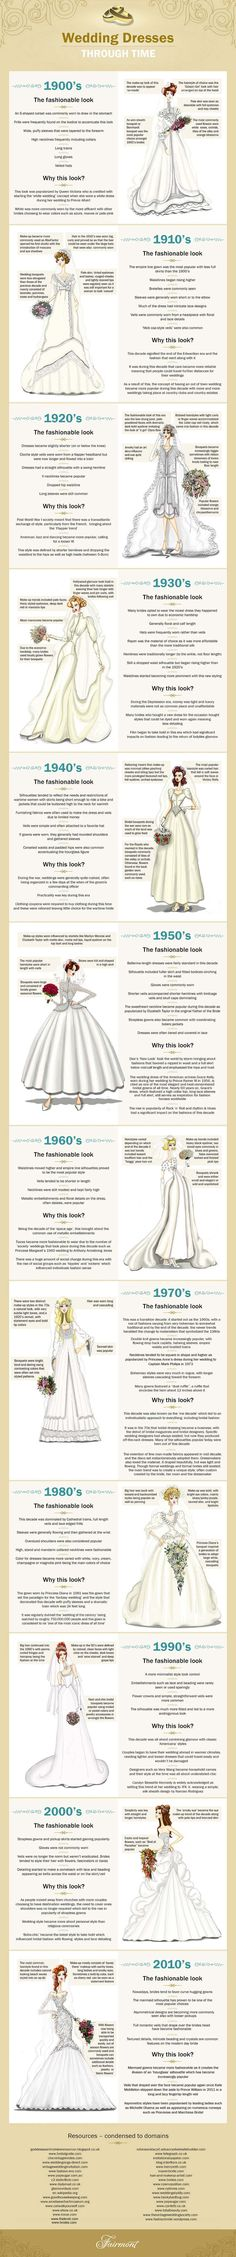 Illustrator Shireen Baker has created an incredible graphic displaying how much wedding dresses have changed each decade since the 1900s: | This Is How Much Wedding Dresses Have Changed In The Past Century